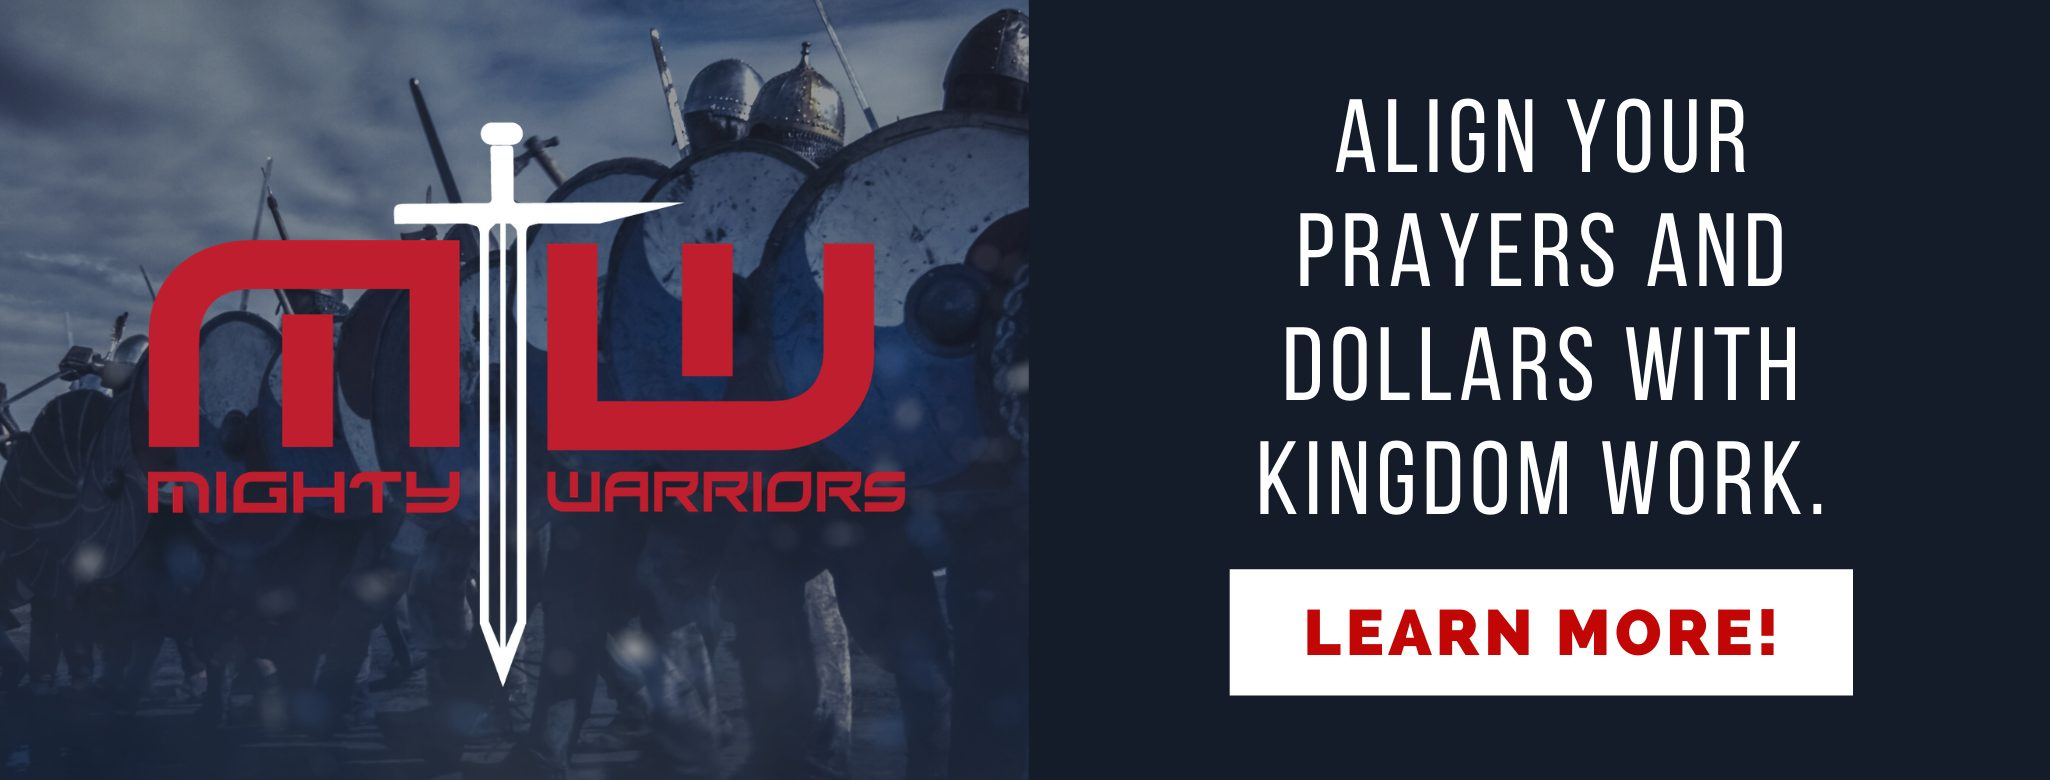 Align your prayers and dollars with kingdom work by being a mighty warrior for Ambassadors for Business